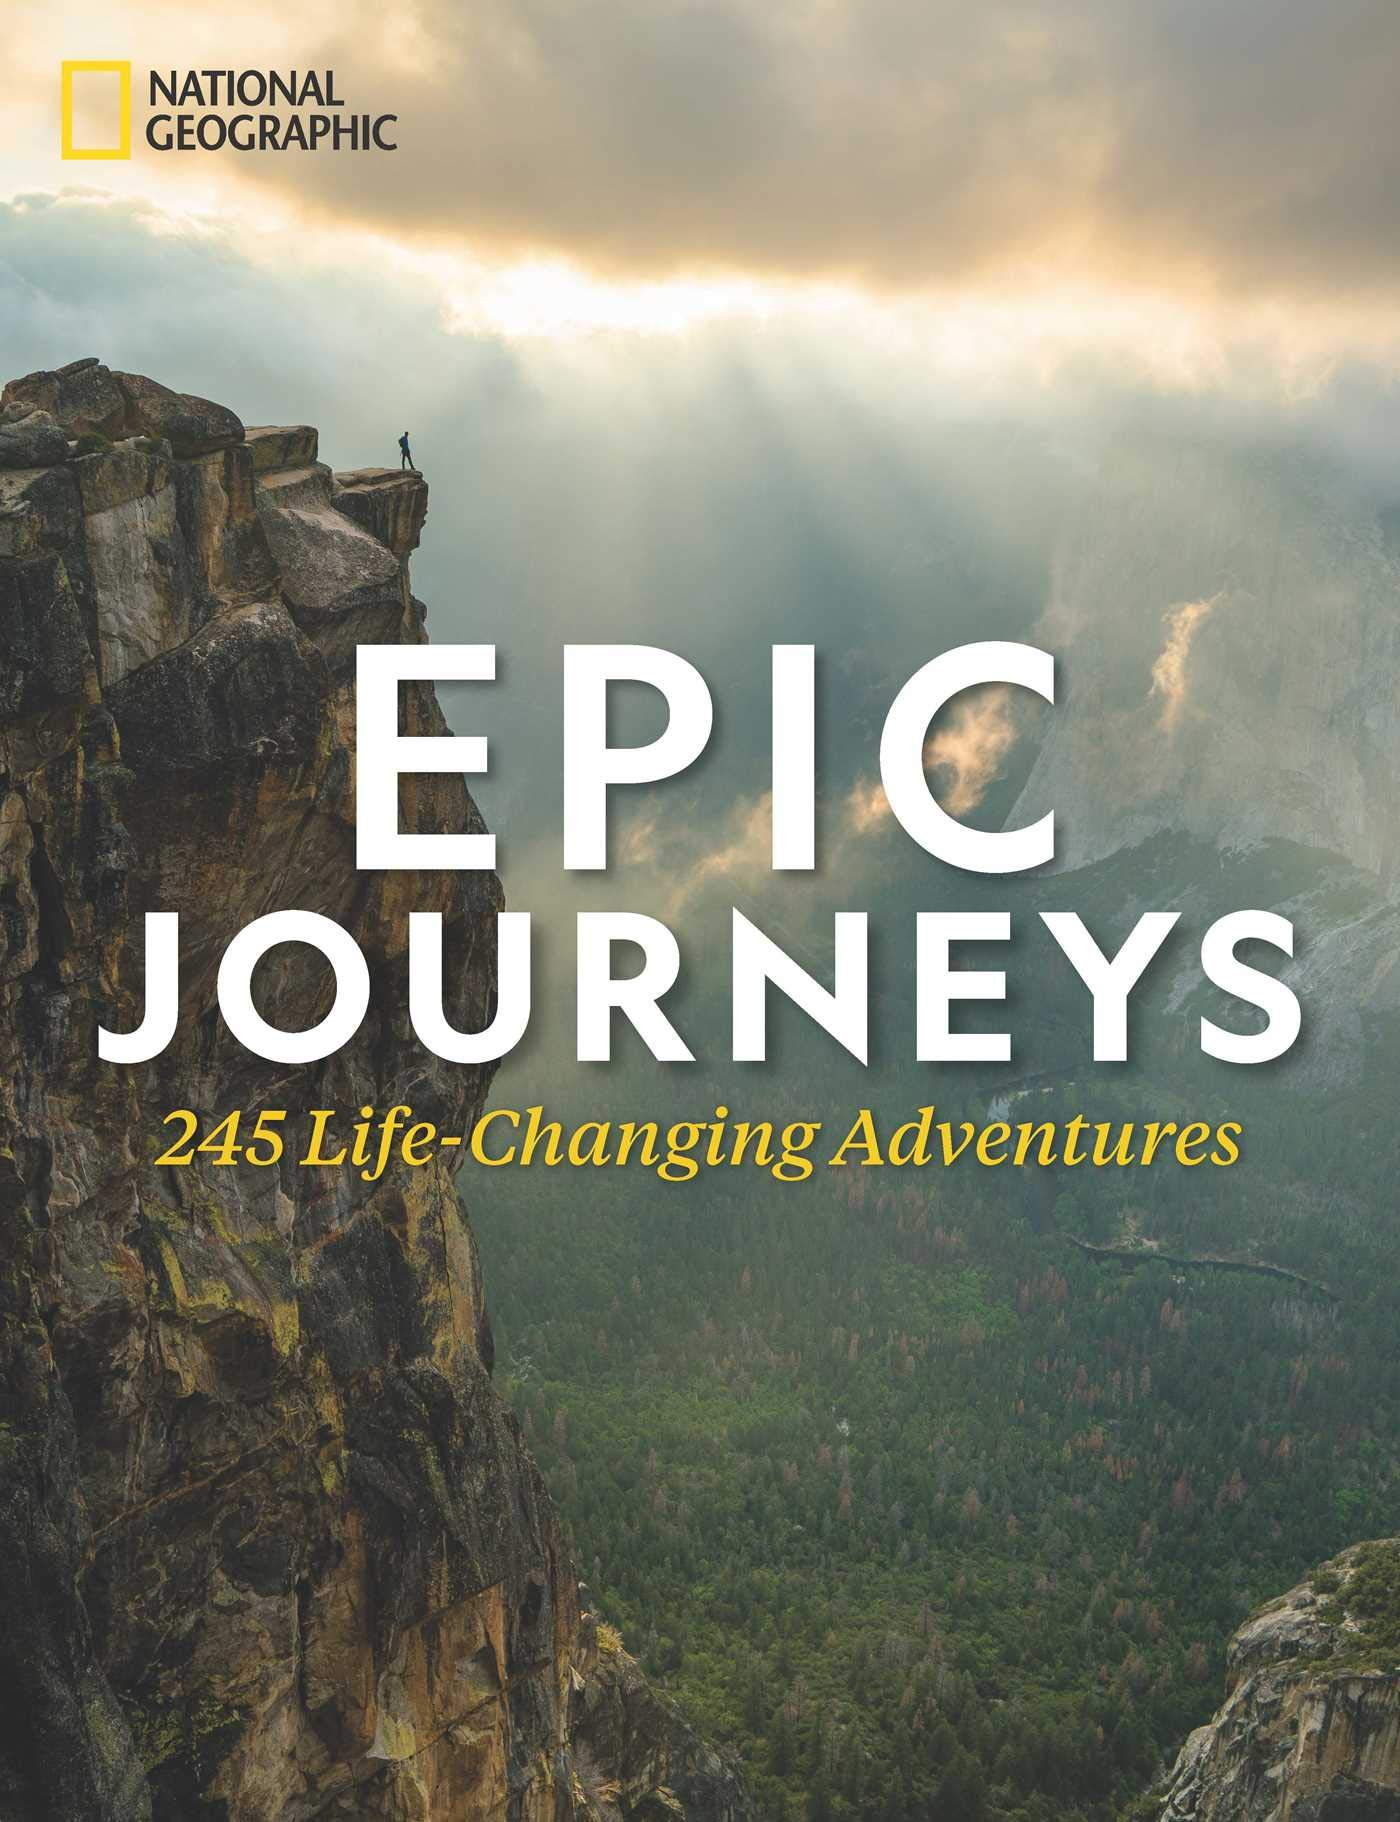 Epic Journeys: 245 Life-Changing Adventures by National Geographic